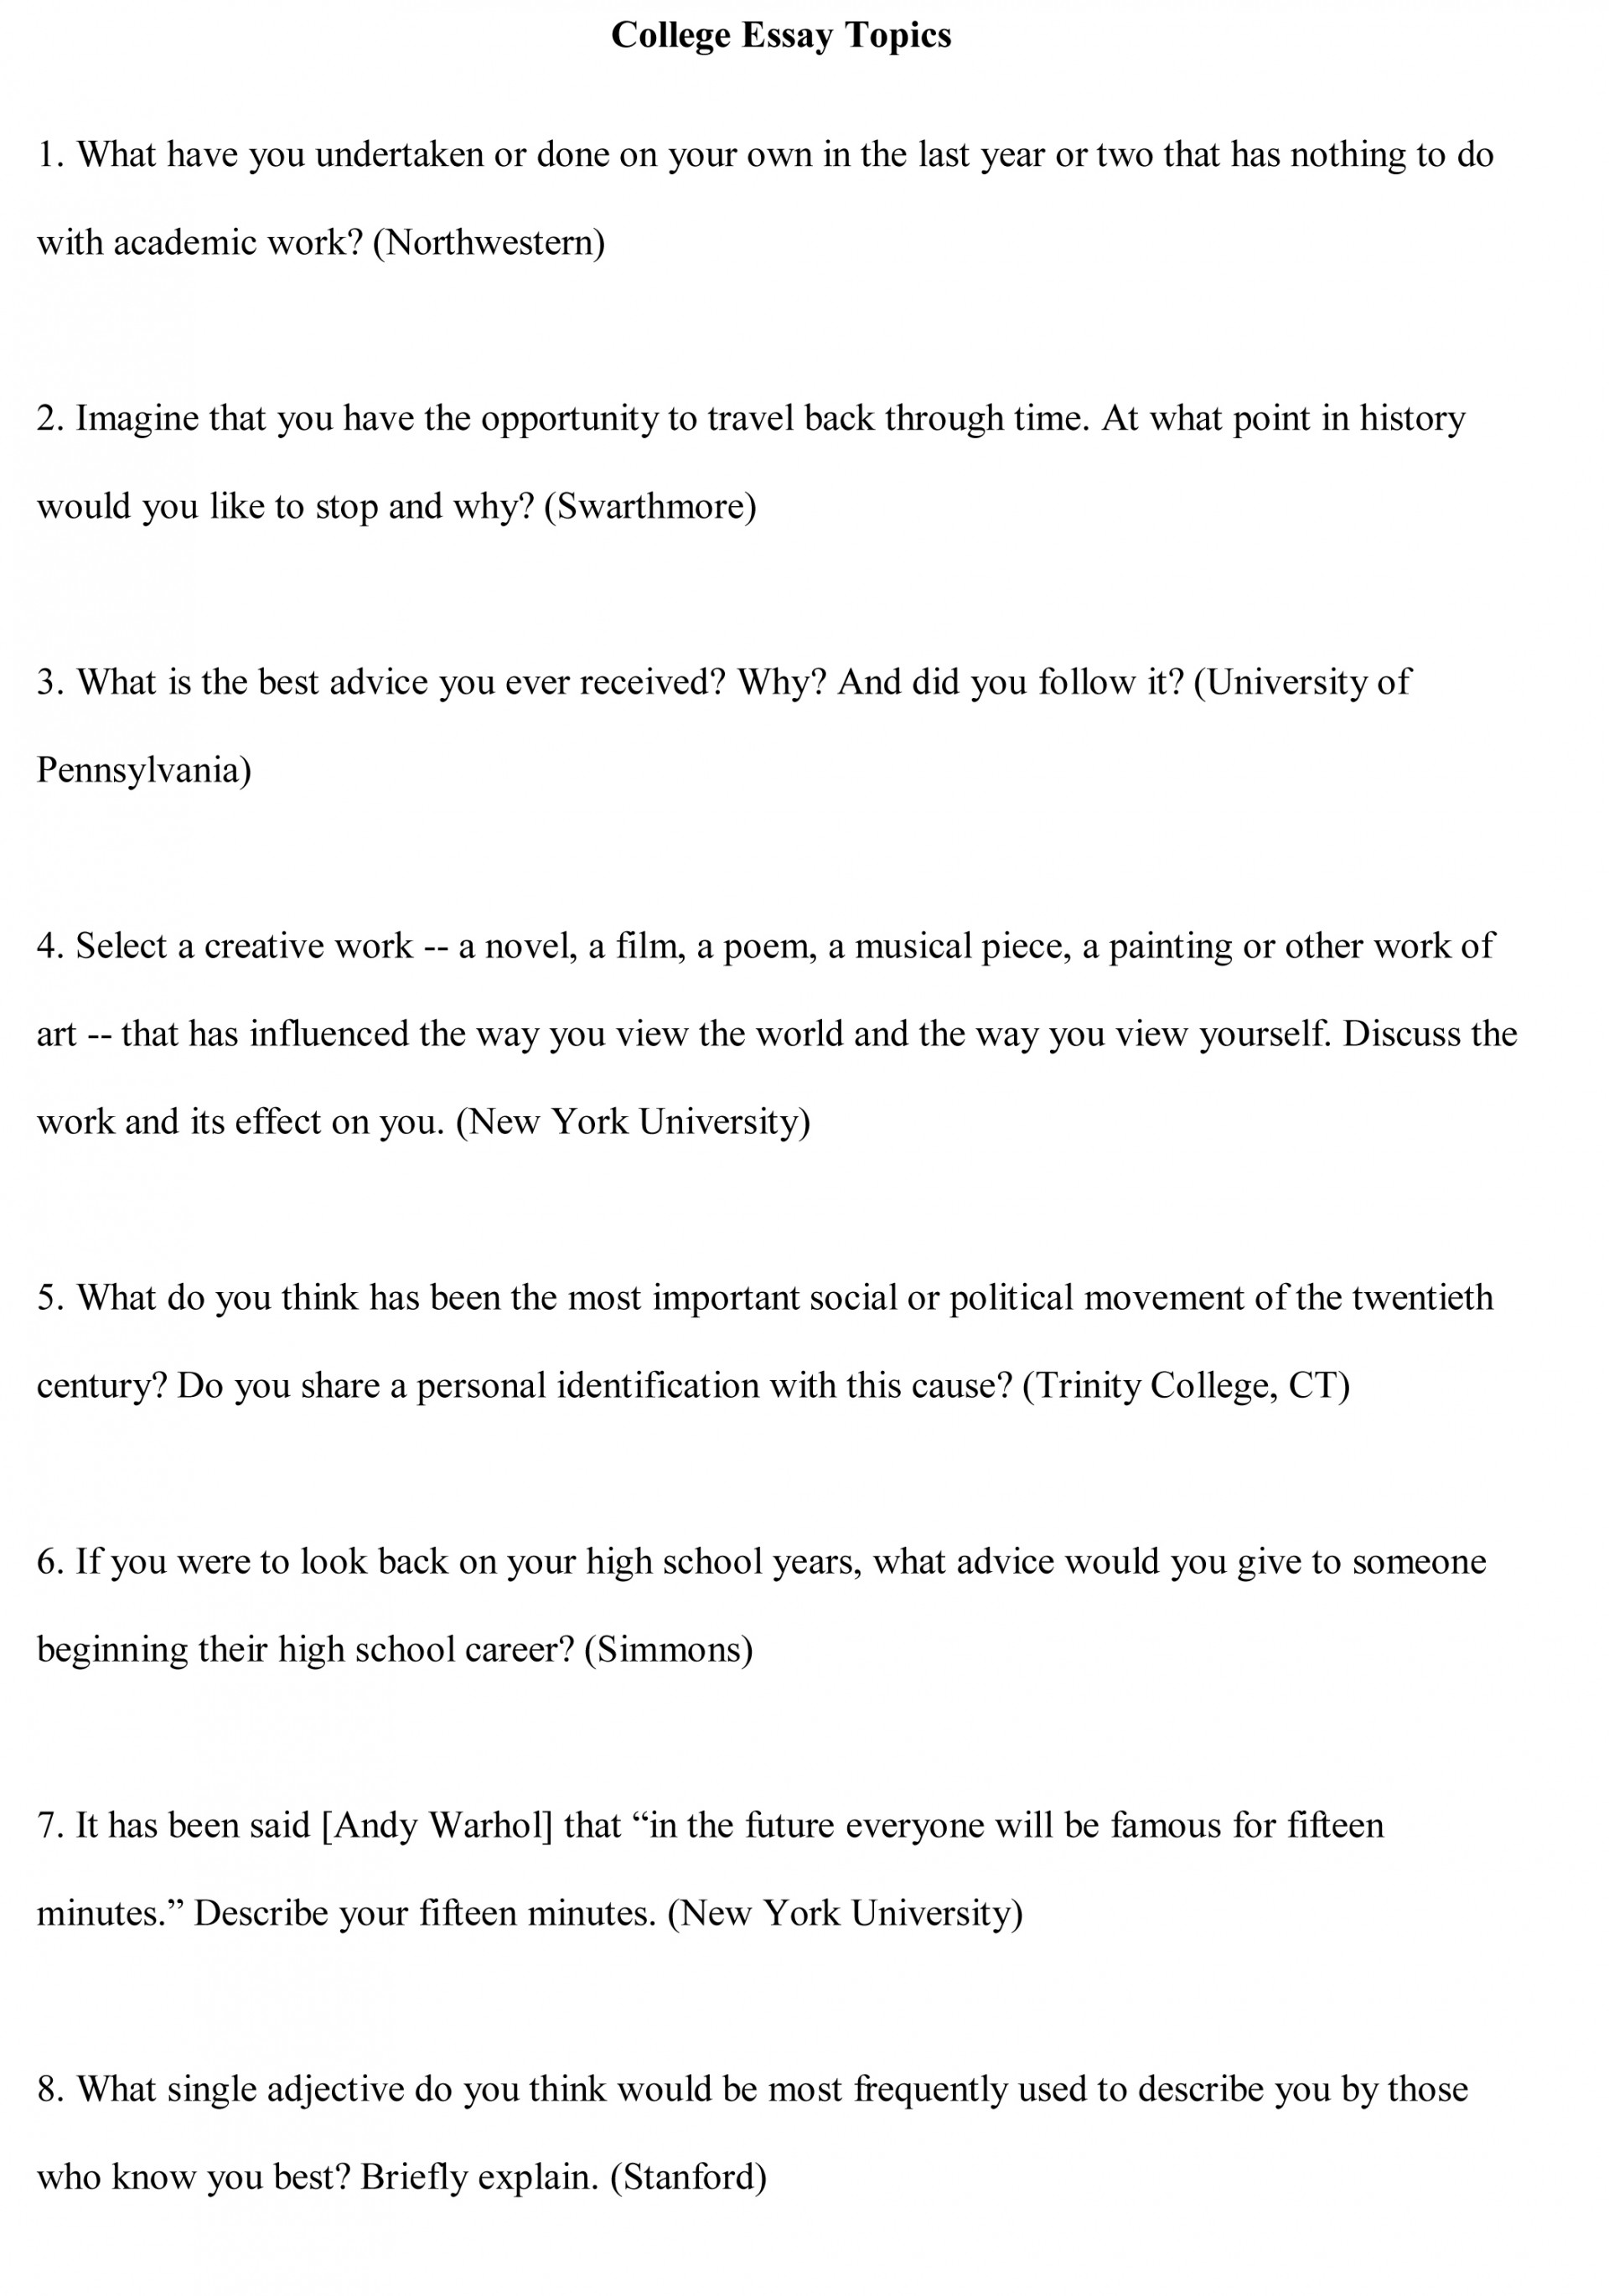 005 College Essay Questions Example Topics Free Frightening Crazy Application Harvard Prompts 2017 Mit Prompt 1920